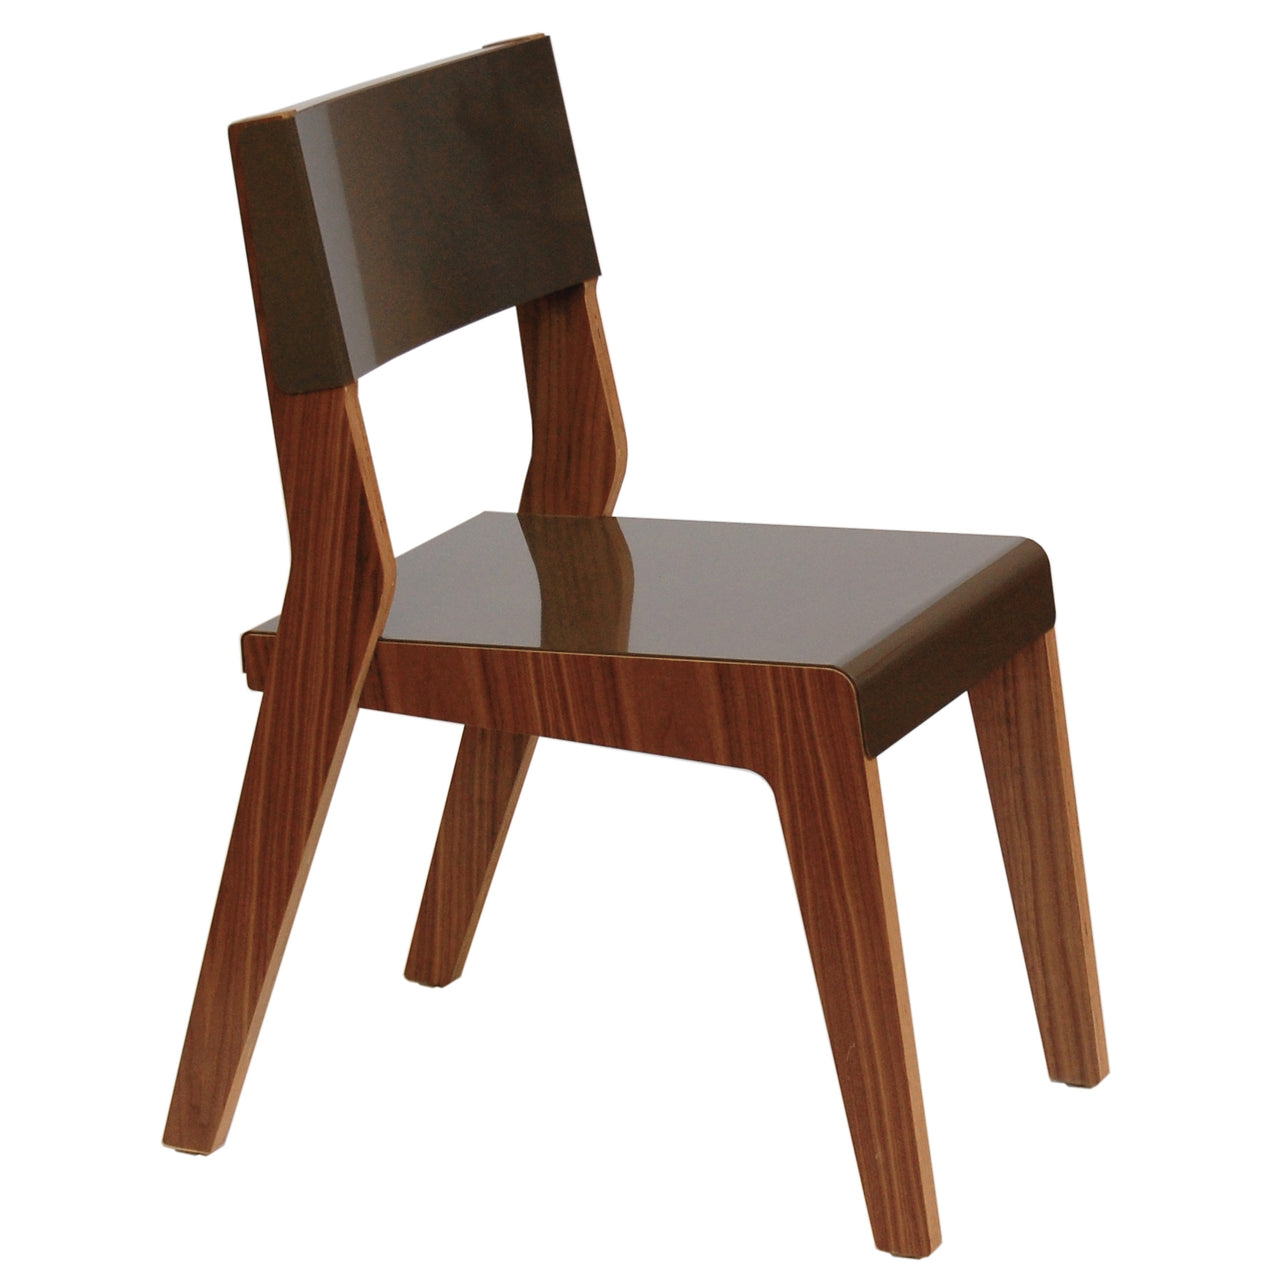 Lock Chair: Warm Grey + Walnut